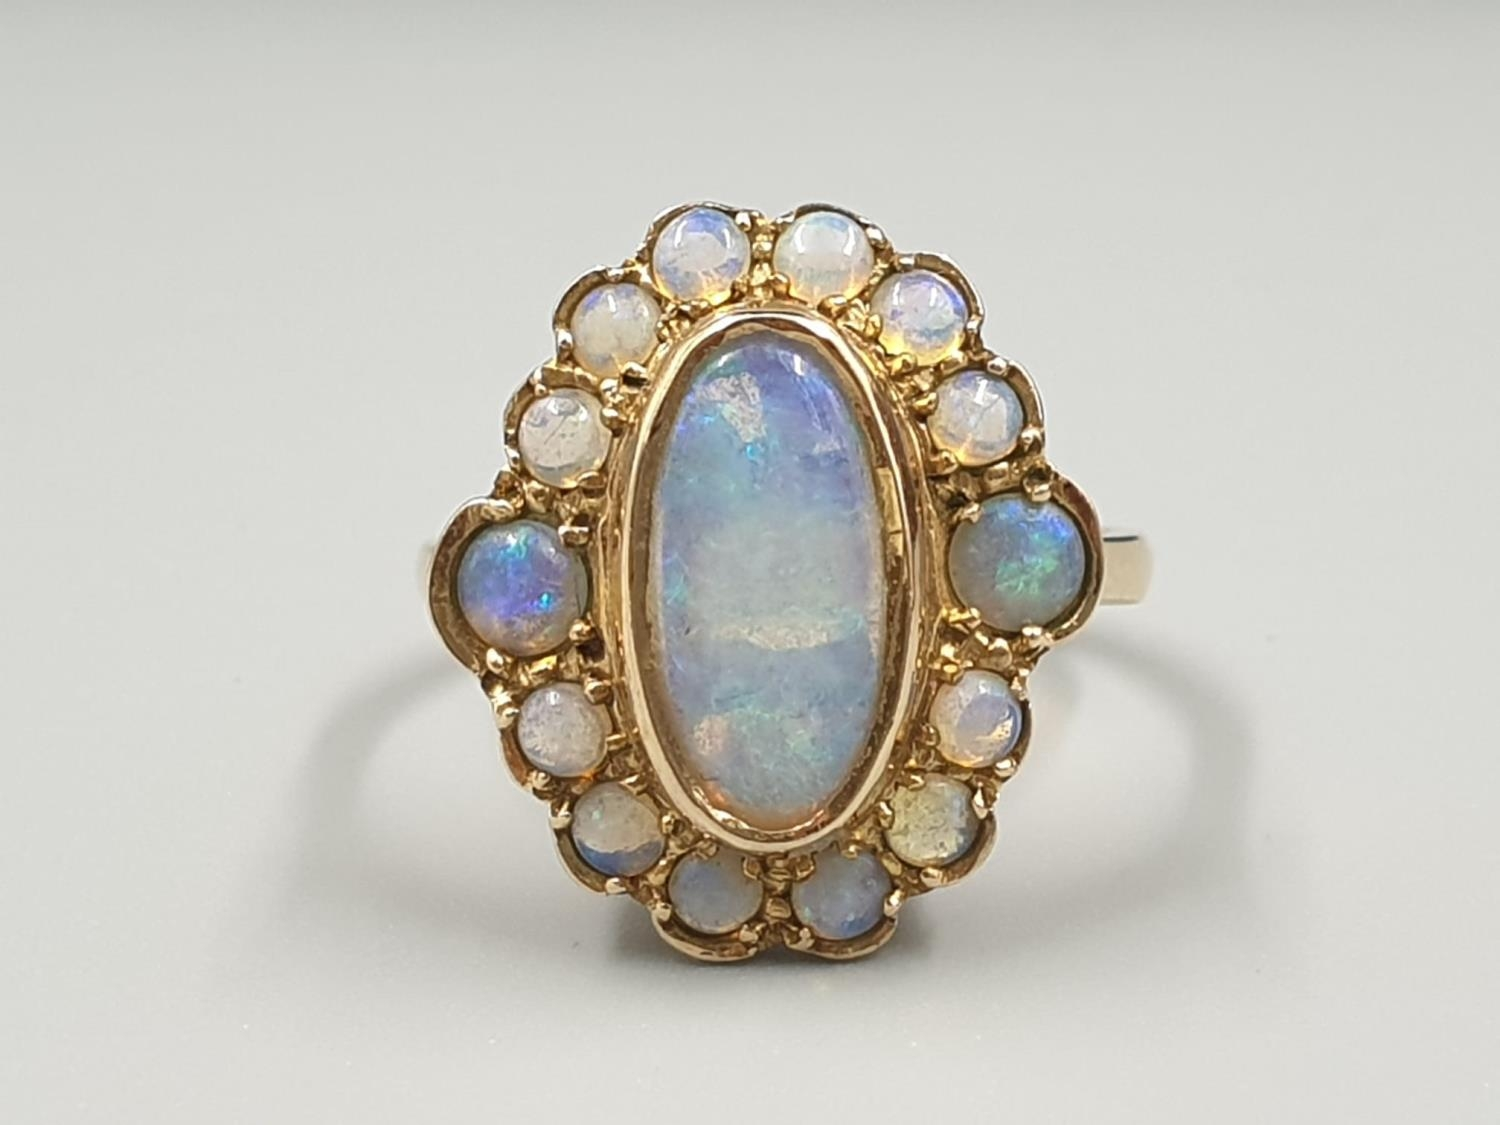 9K YELLOW GOLD VINTAGE OPAL CLUSTER RING WEIGHT 4.3G SIZE N